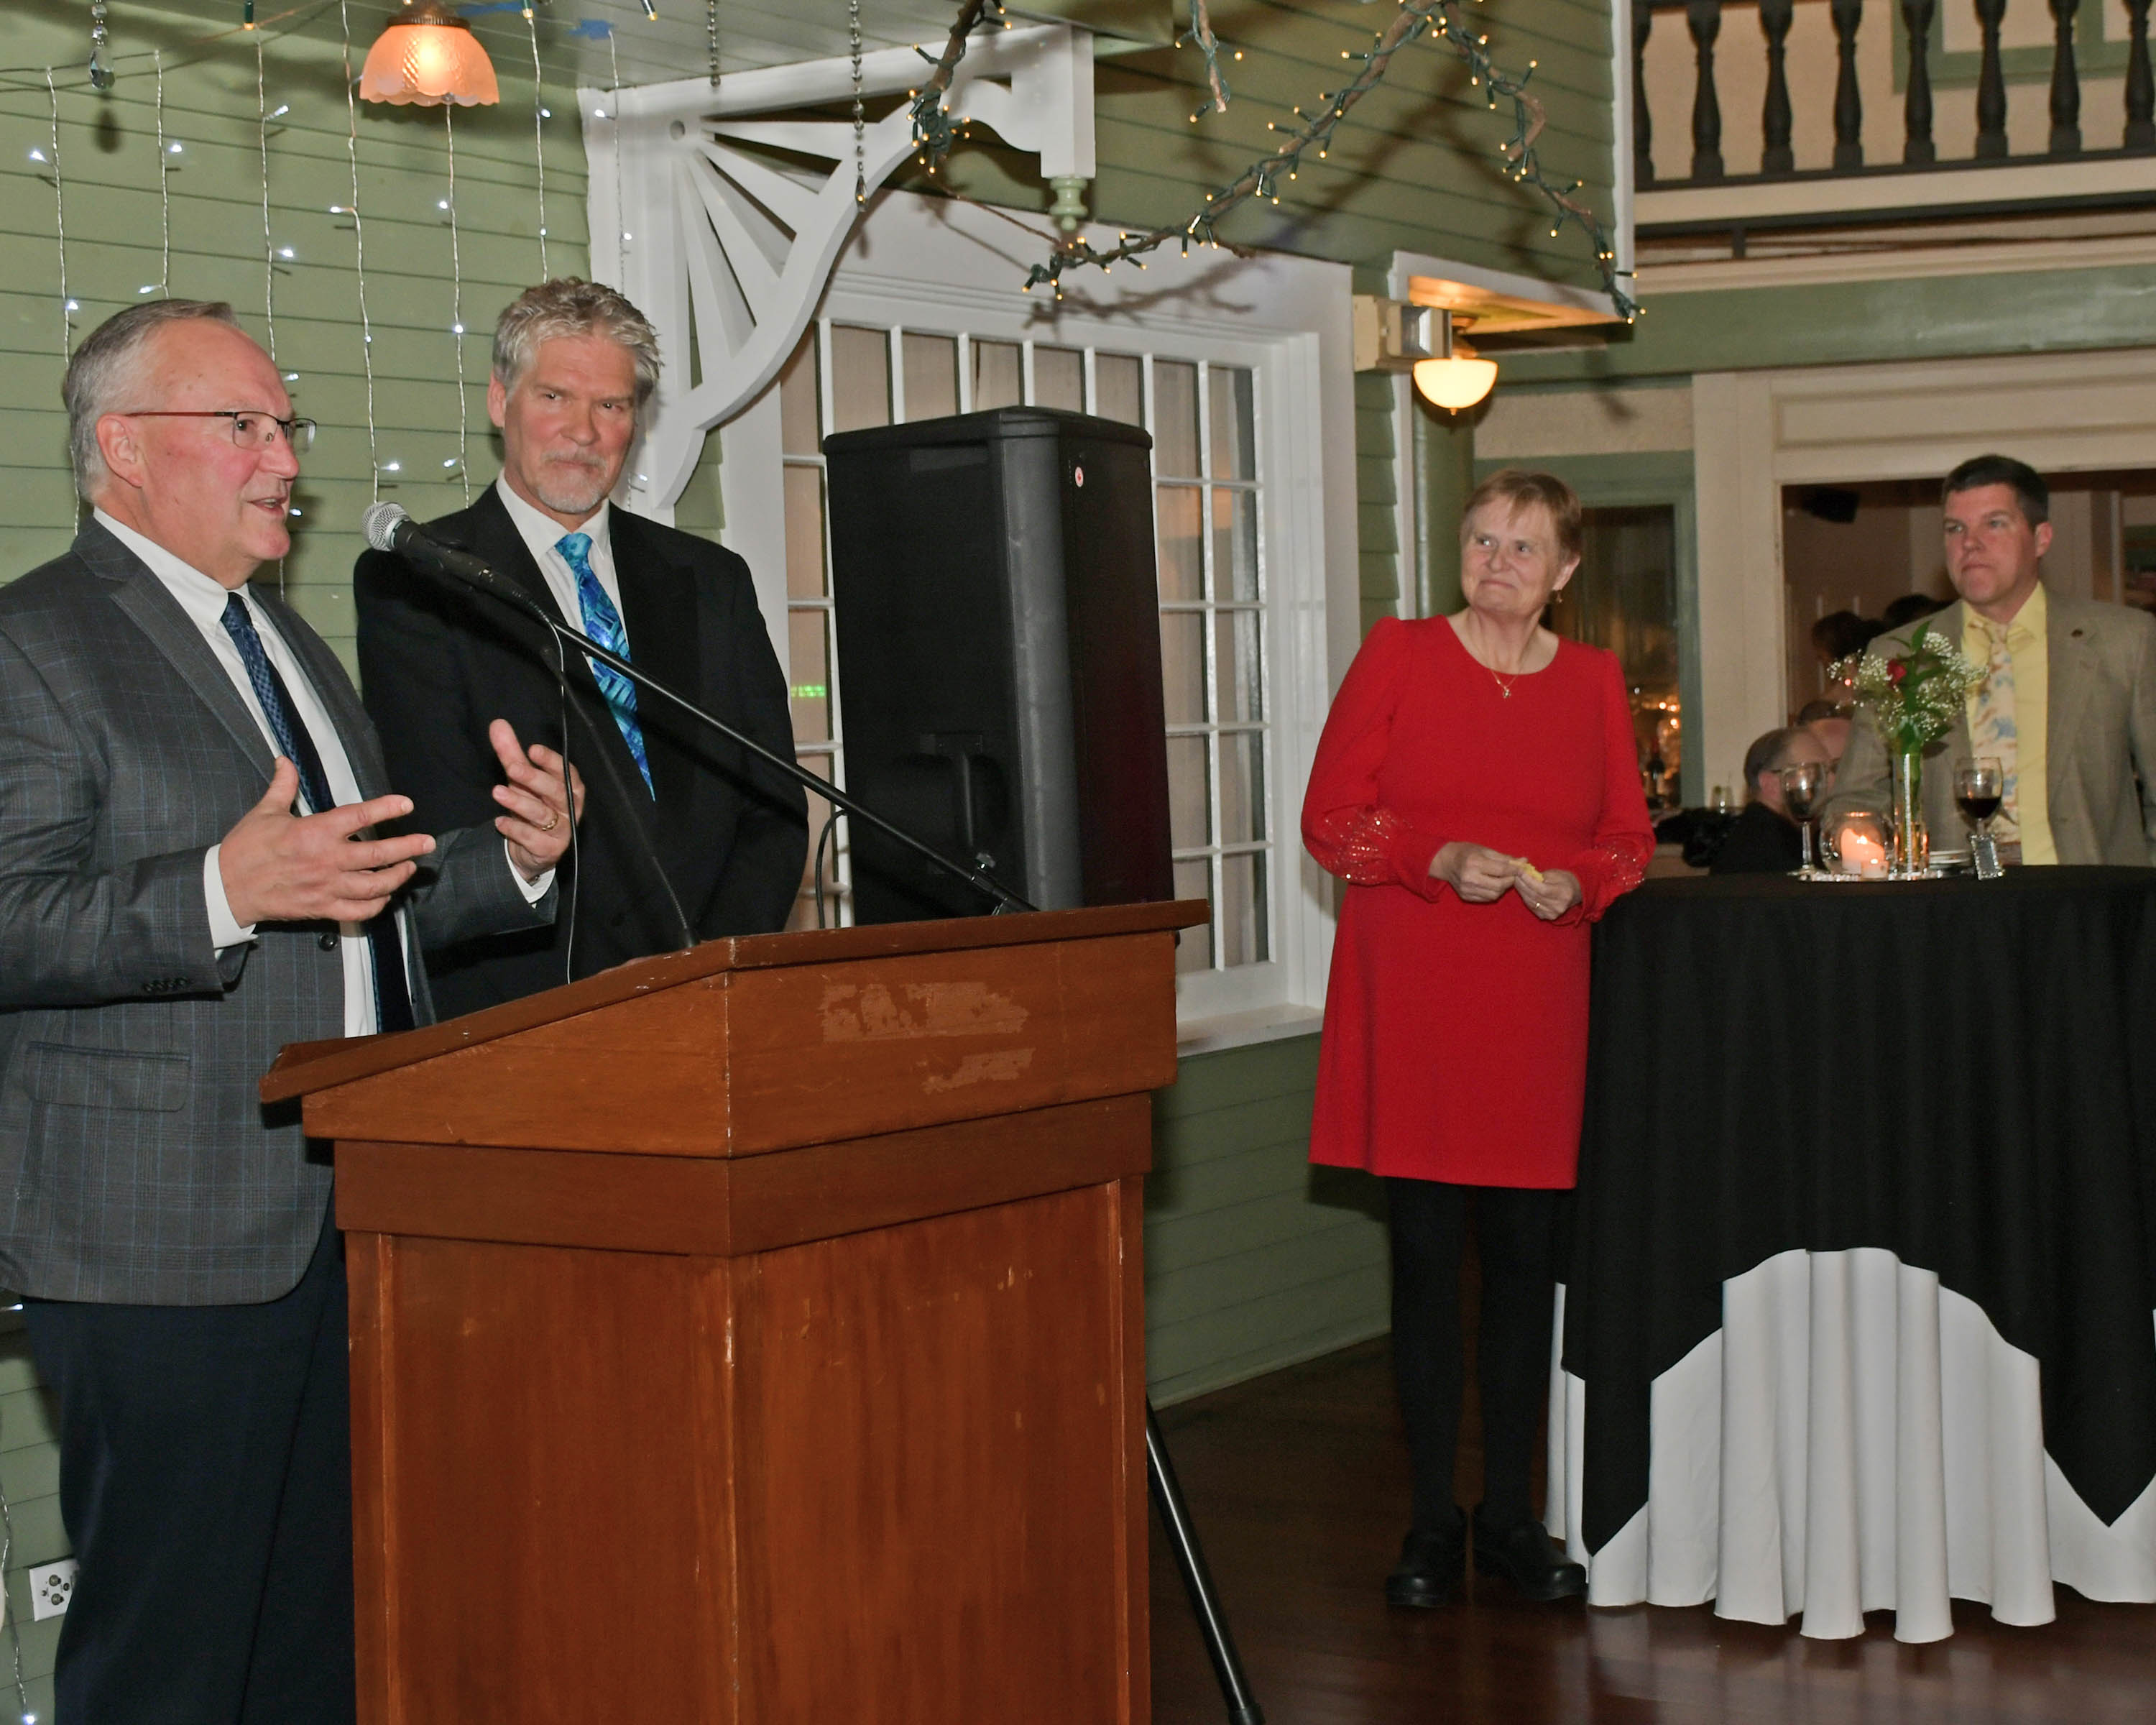 Tom Flynn of Jaeger & Flynn, AIM top Sponsor, speaks at Vin Le Soir to benefit AIM Services, Inc.